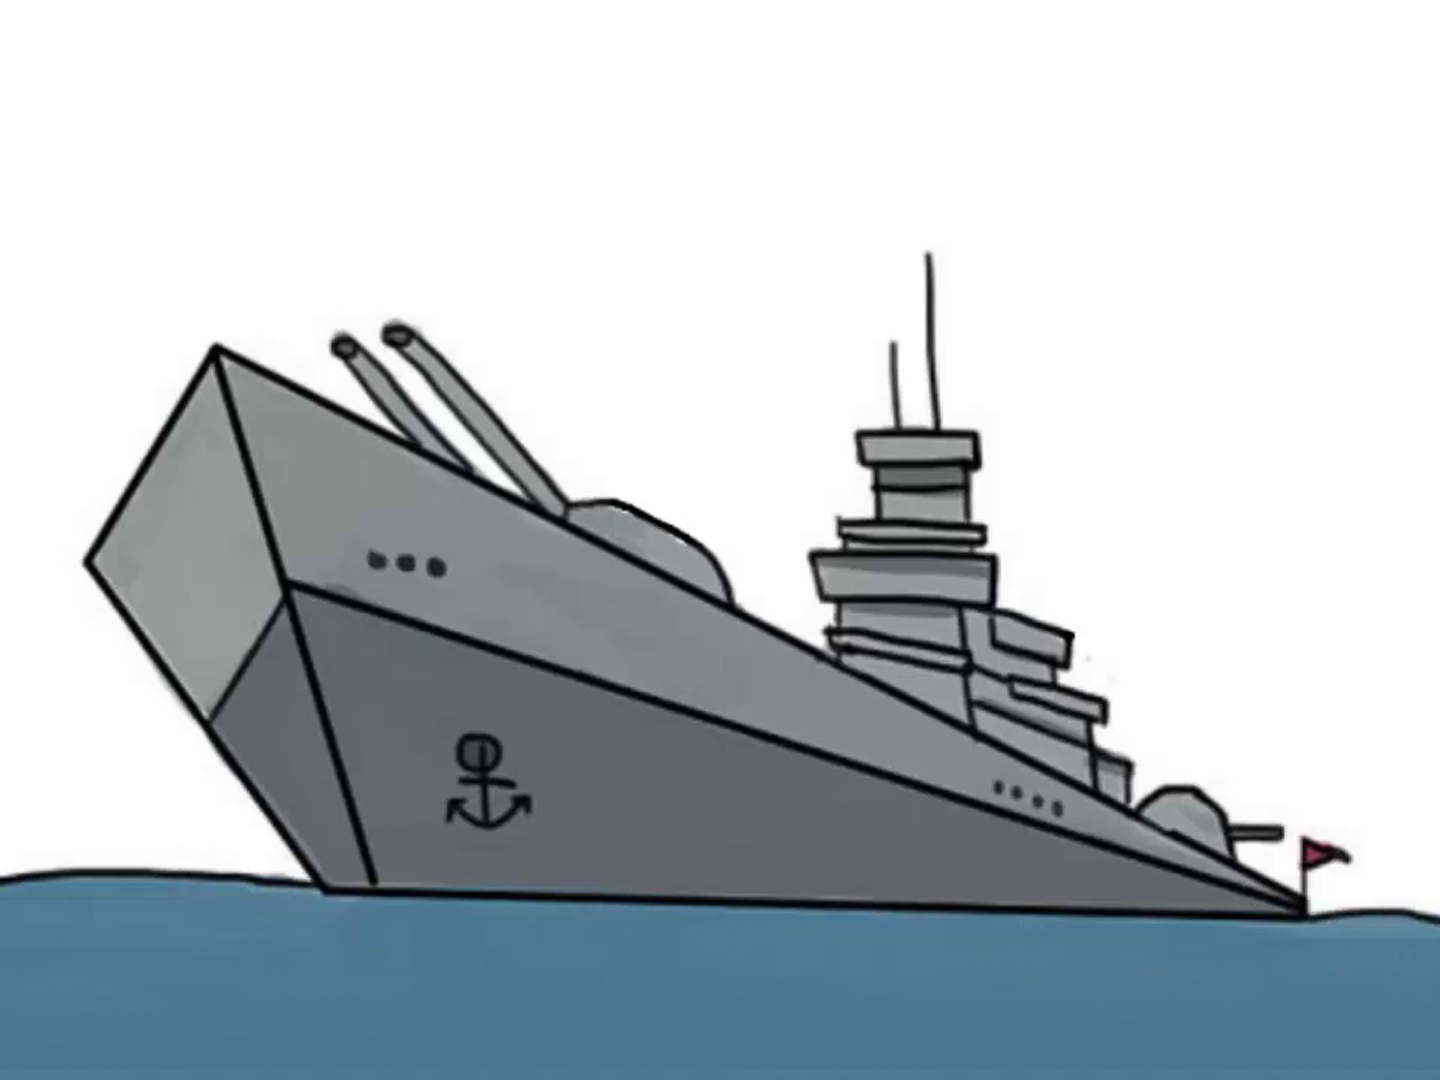 Sinking simulator ships clipart clipart images gallery for.